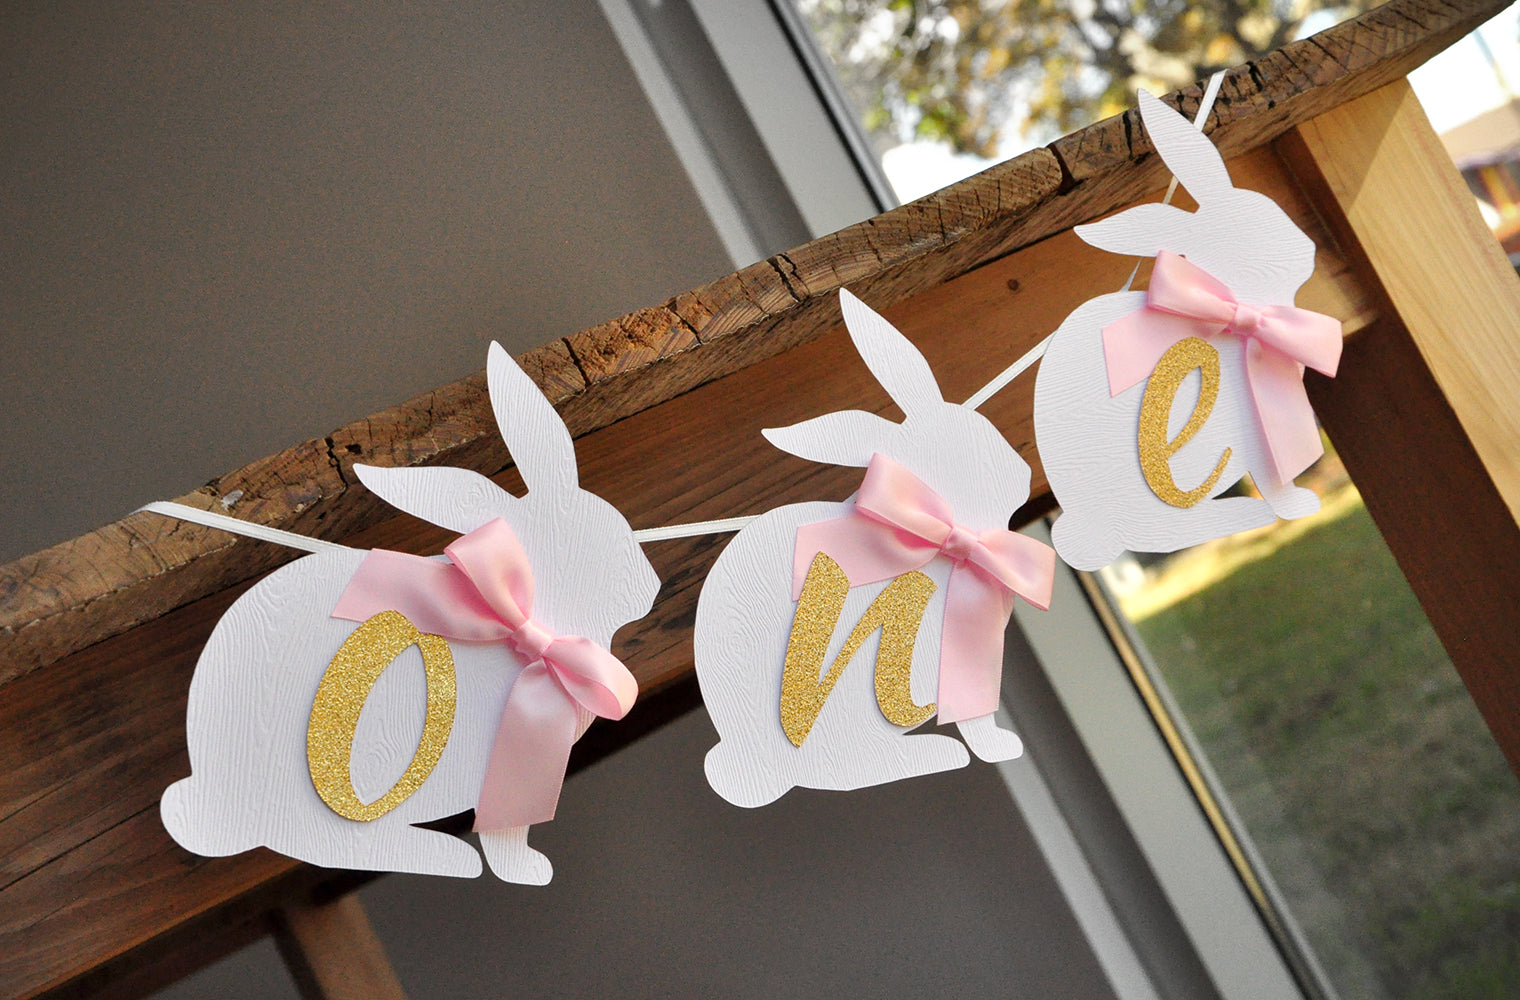 Pink First Birthday Decorations Some Bunny is One Party Decorations Some Bunny First Birthday Decorations Rabbit Pink Bunny Confetti